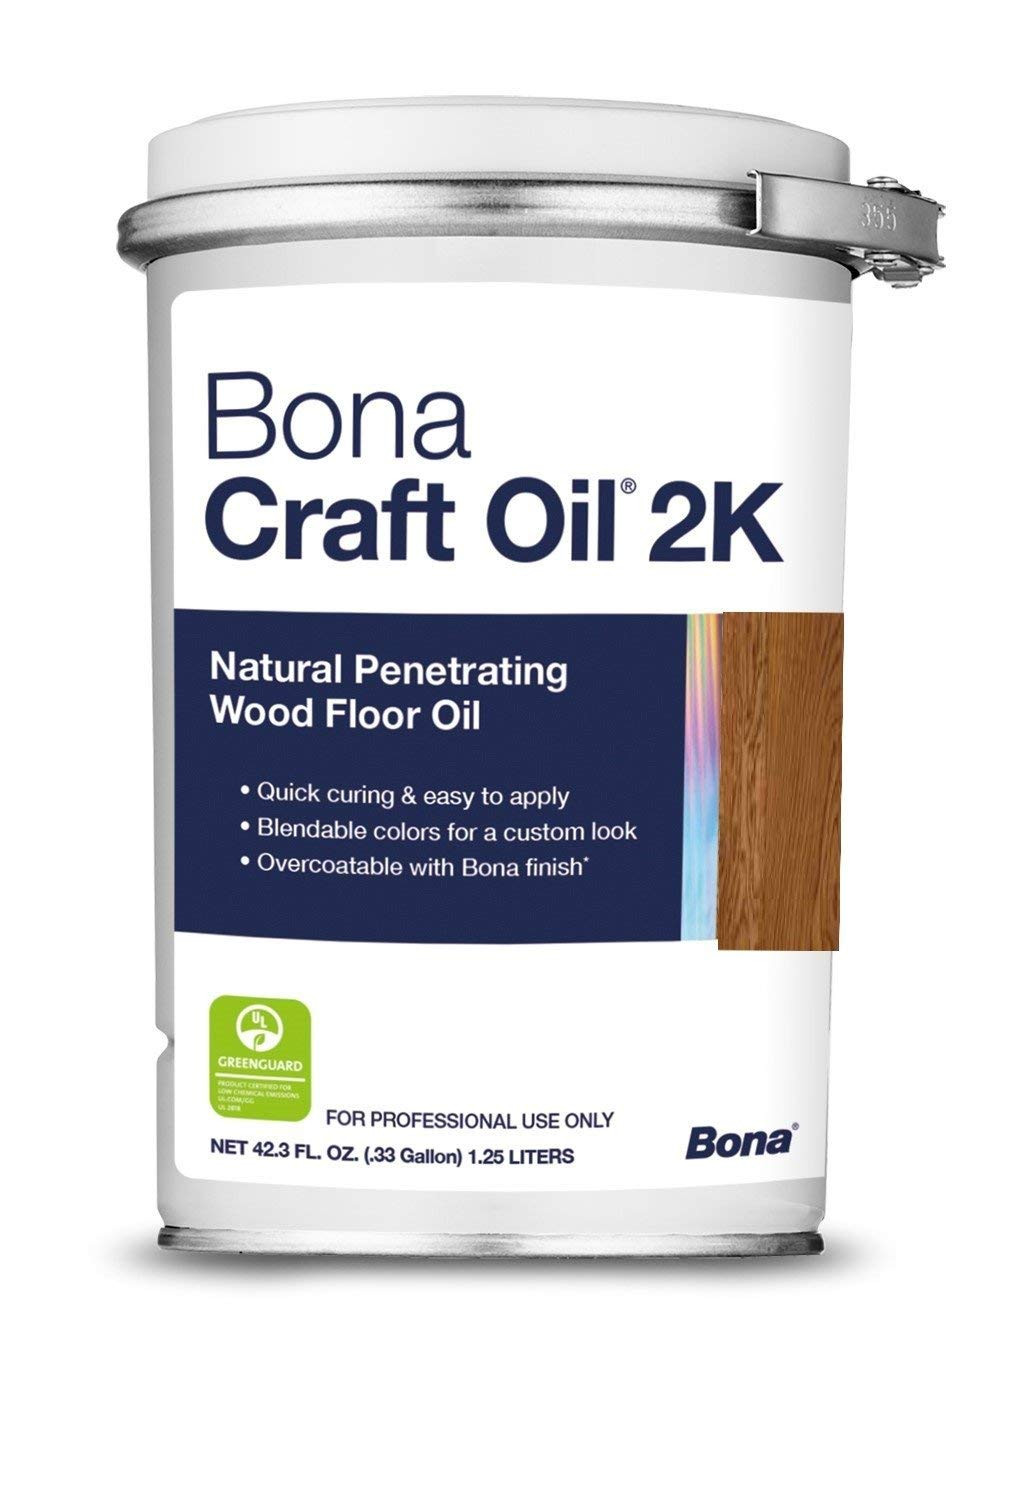 Quality Craft Hardwood Flooring Of Amazon Com Bona Craft Oil 2k Garnet Home Kitchen Pertaining to 61rr Od Vpl Sl1500